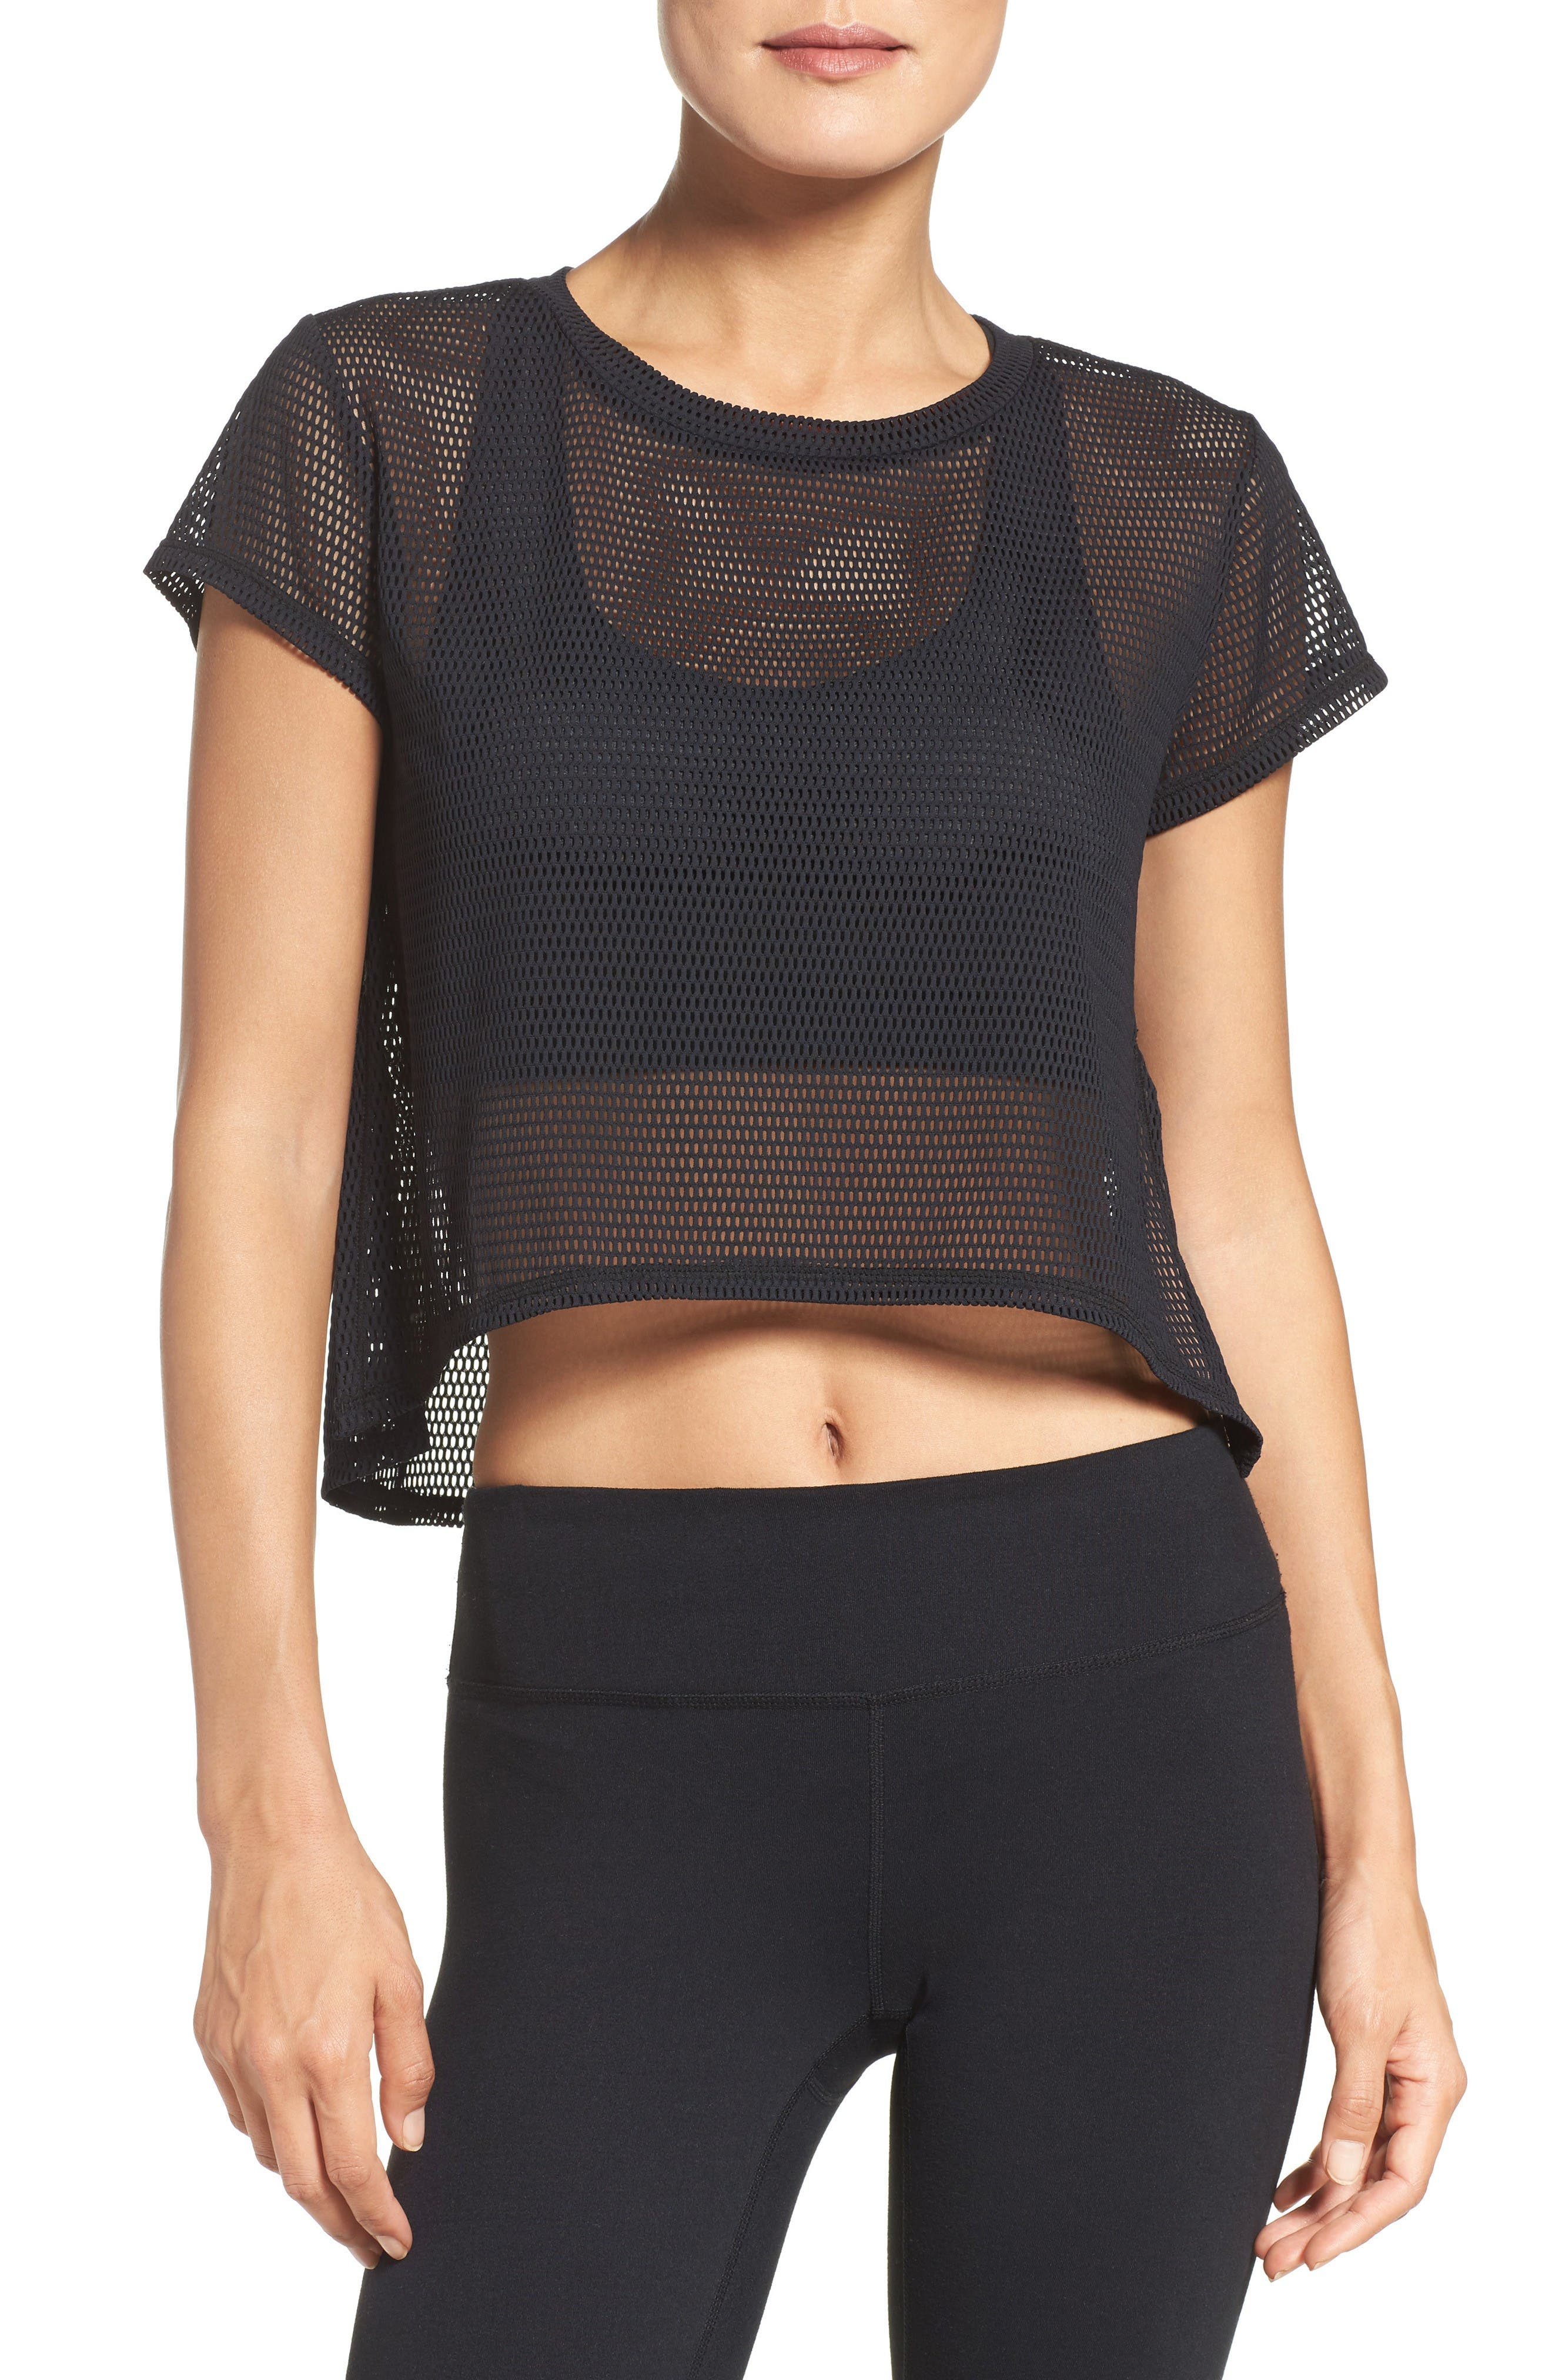 Zella Meshin' Around Crop Tee